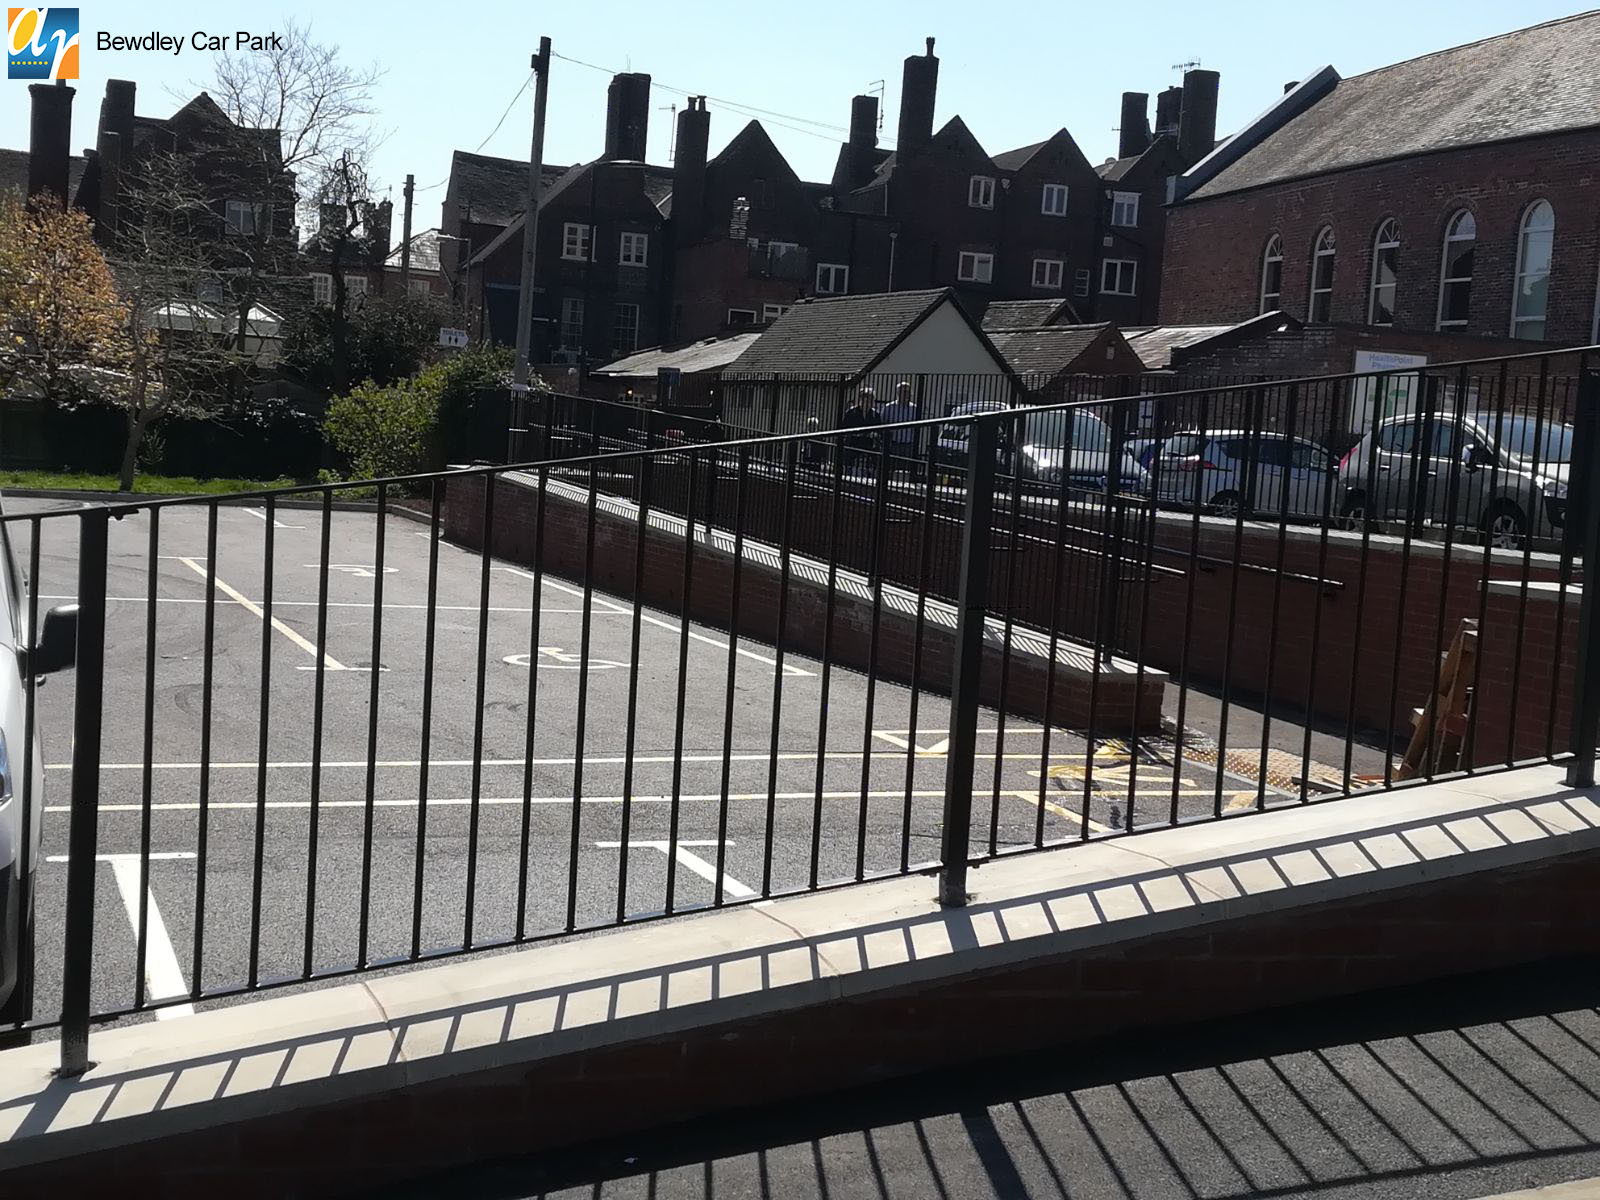 Bewdley Car Park Flat Top metal railings